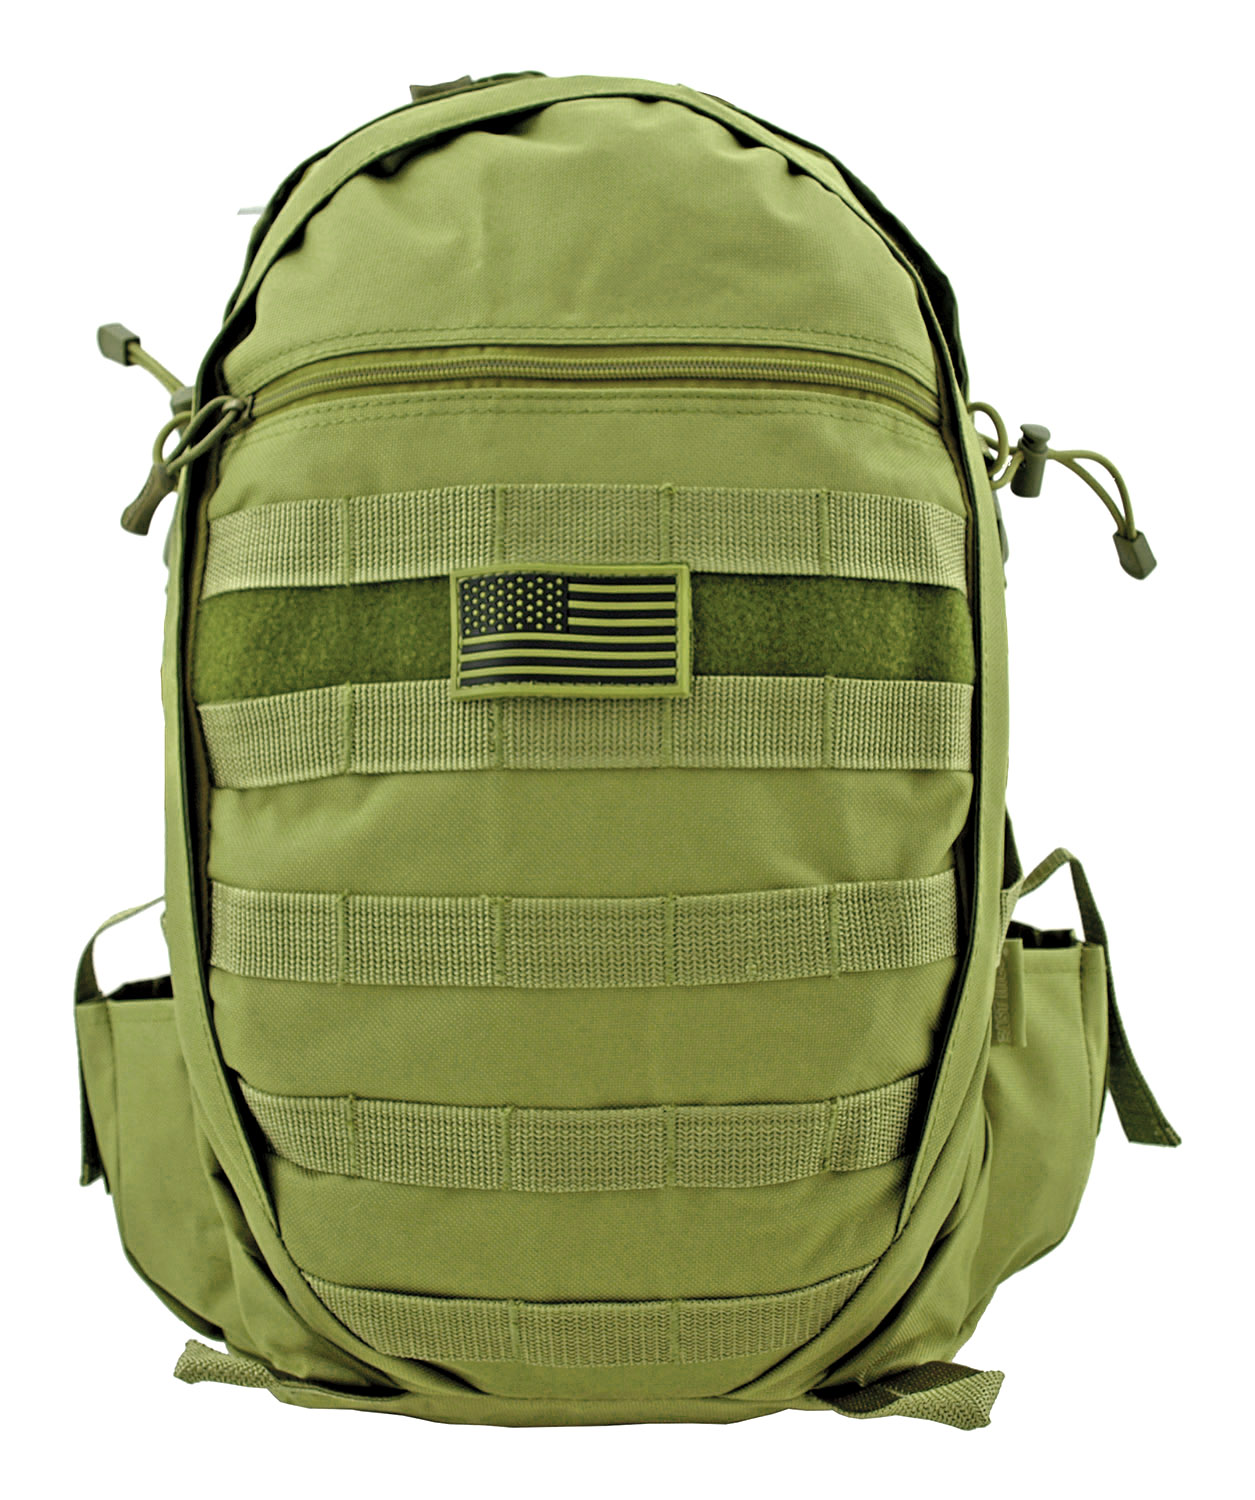 The Runner Tactical Bug Out Backpack - Olive Green